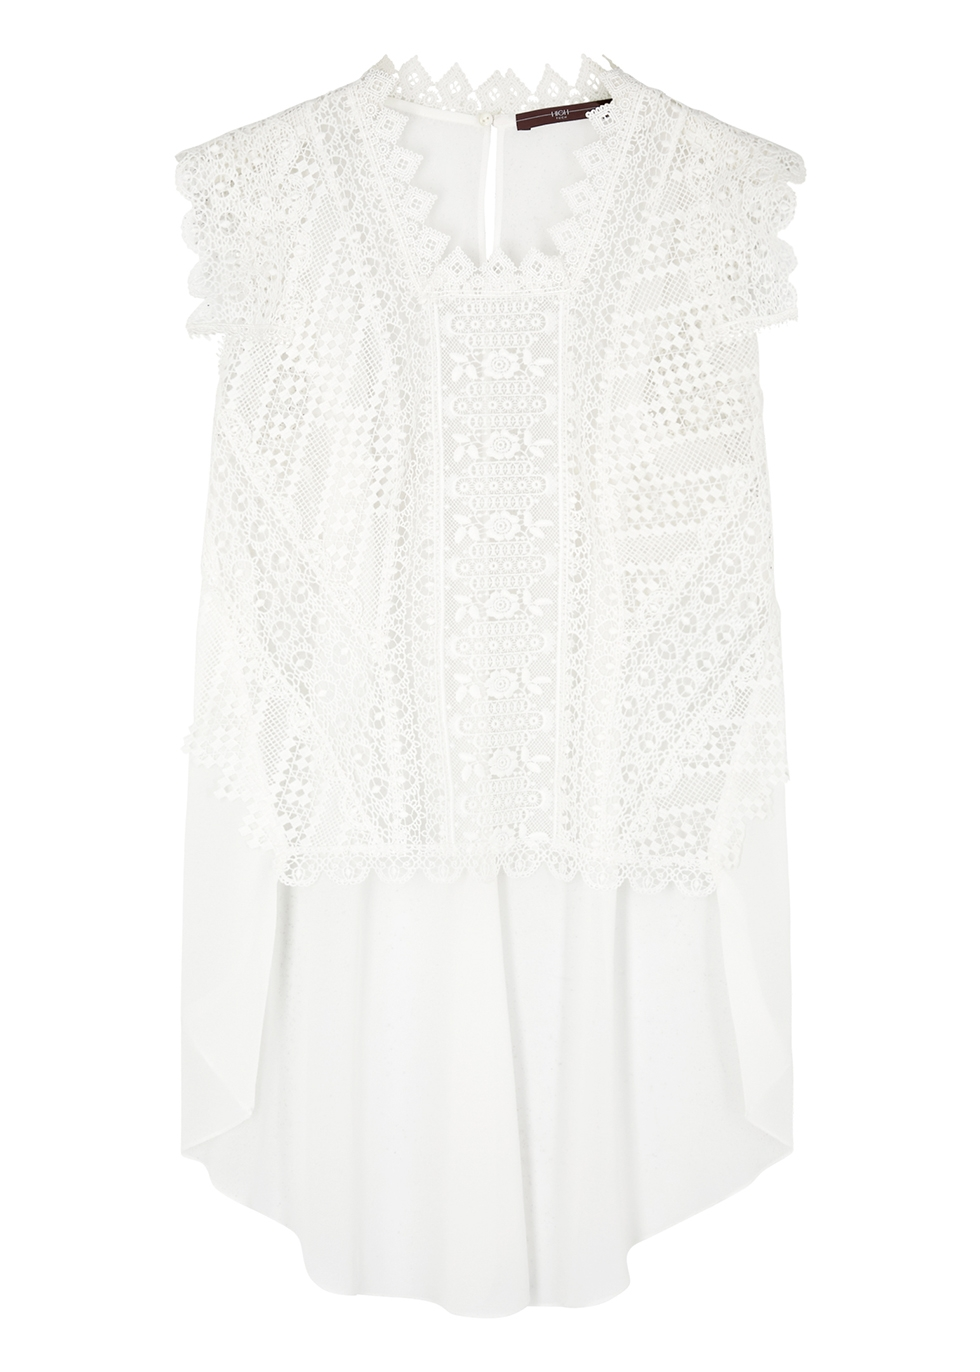 Finesse white guipure lace top